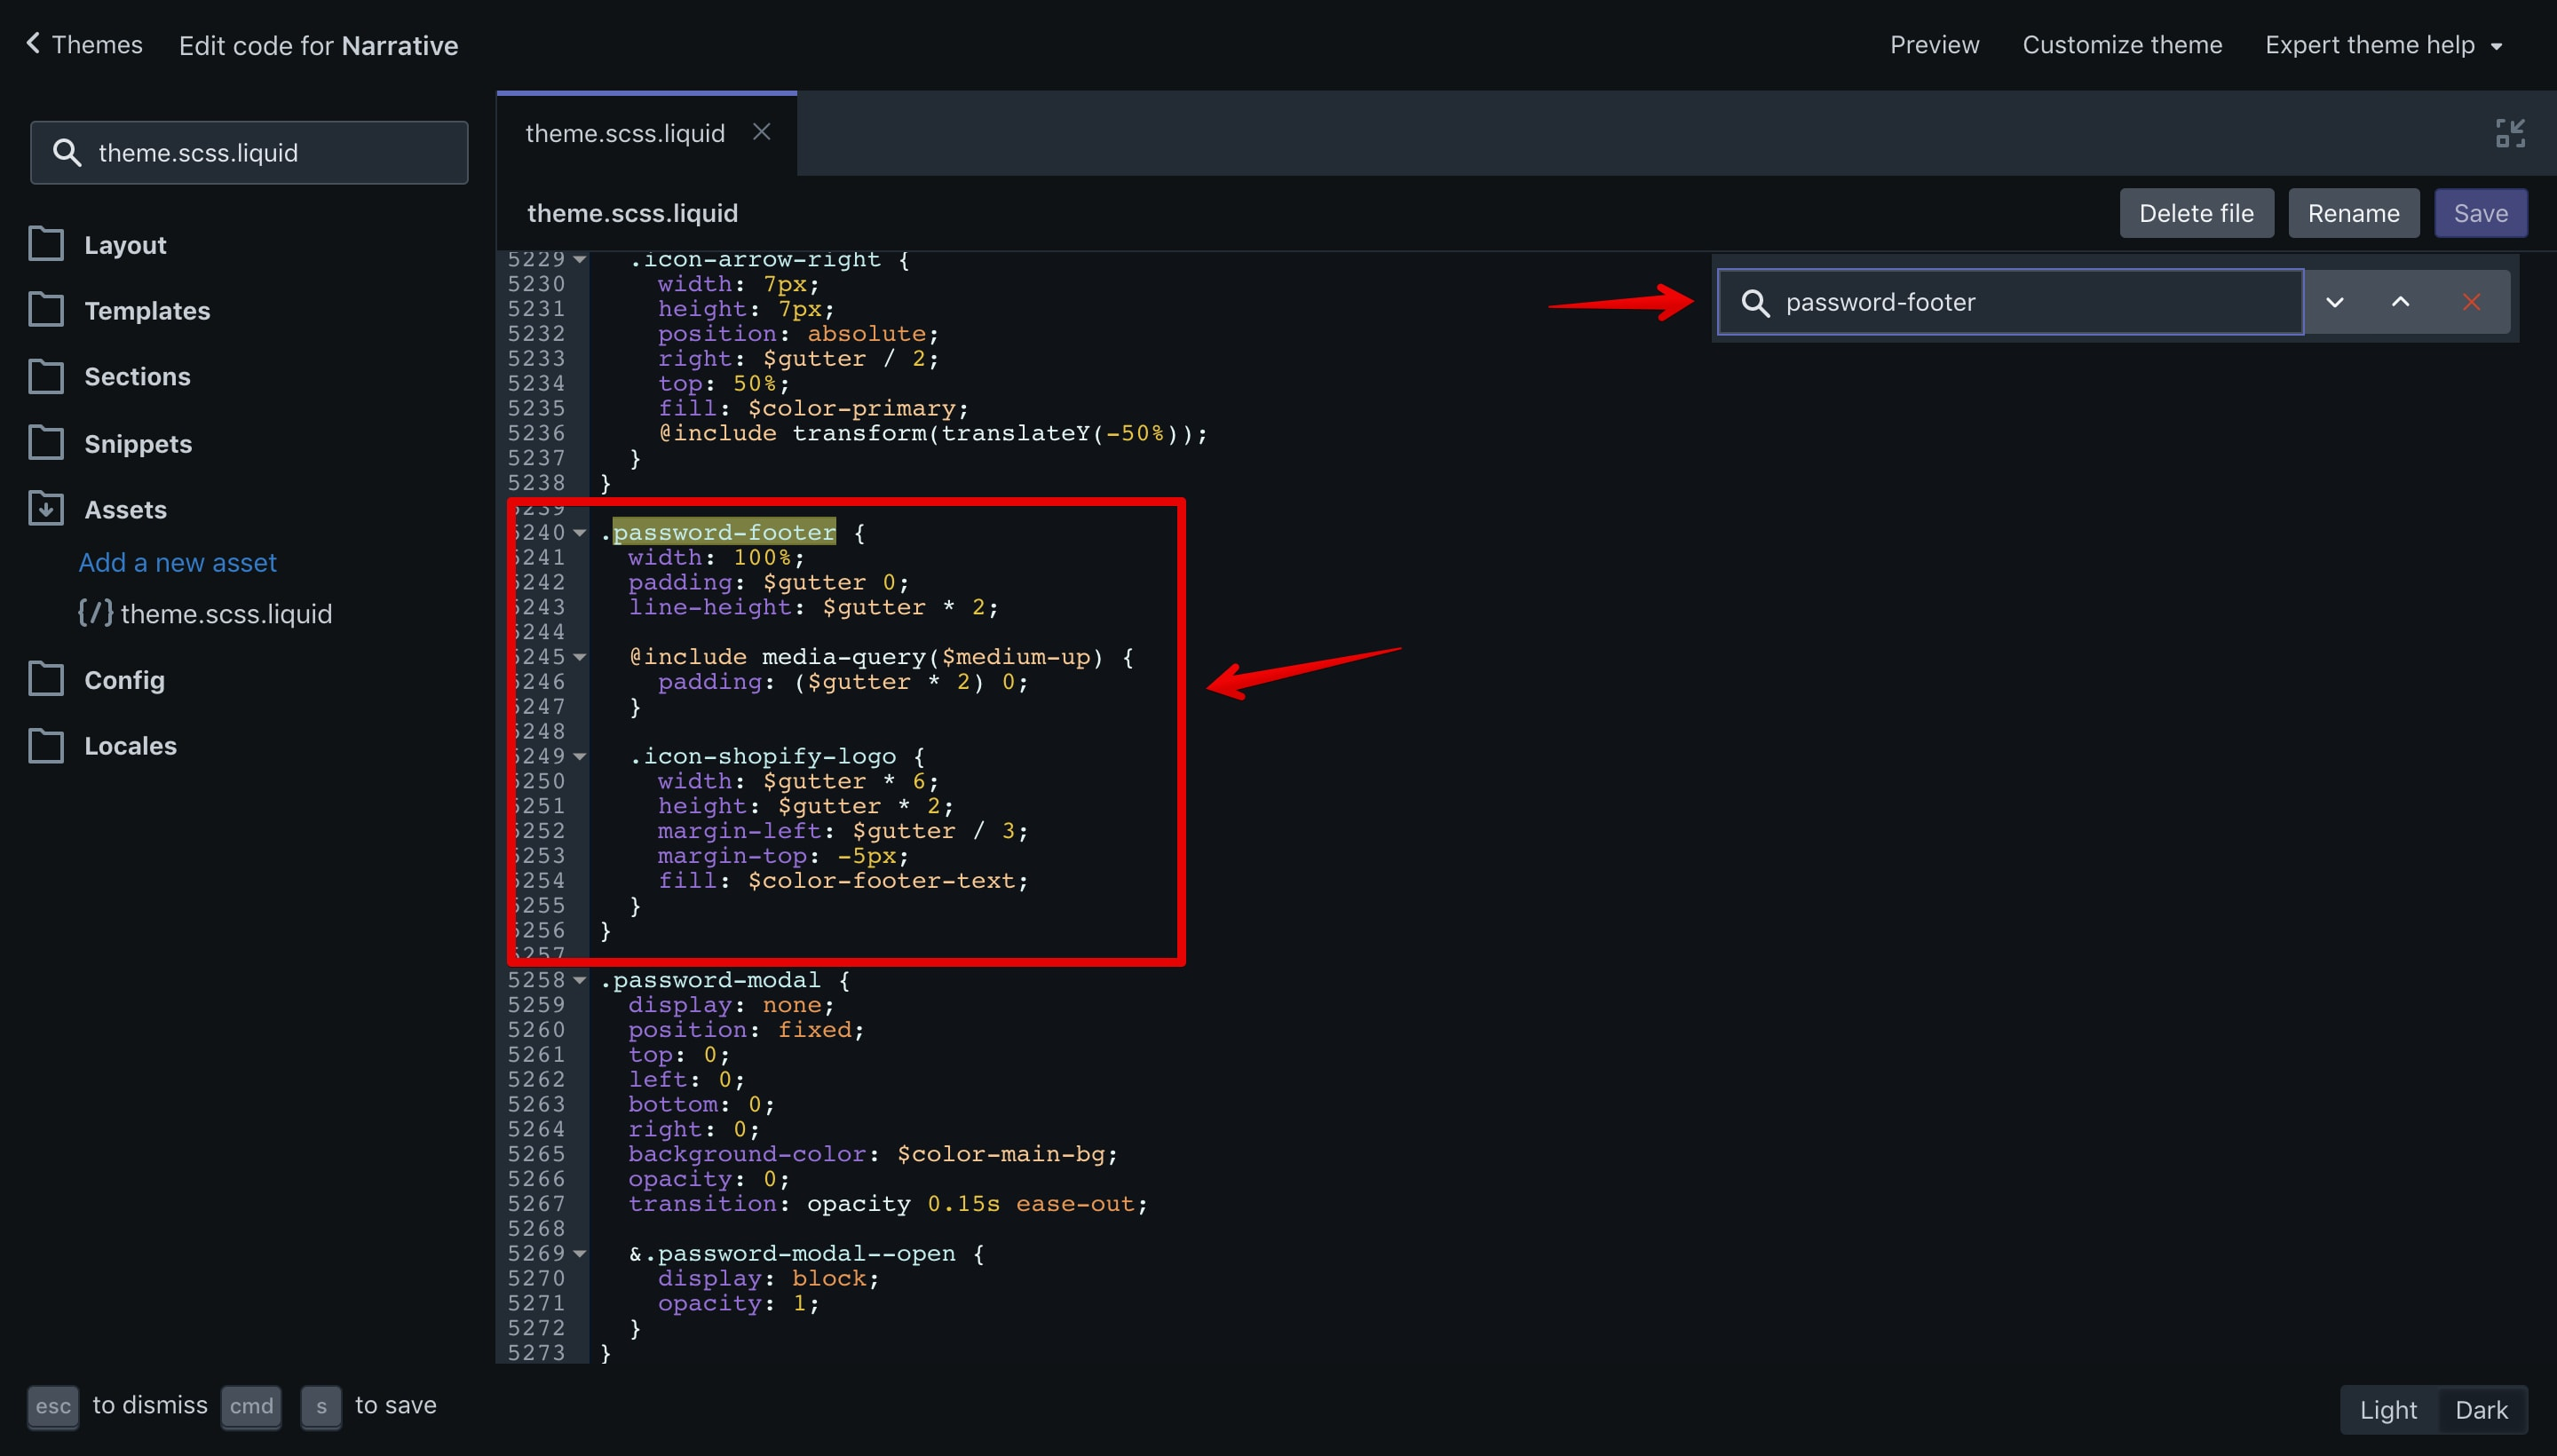 CSS code that needs to be removed in the Narrative theme.